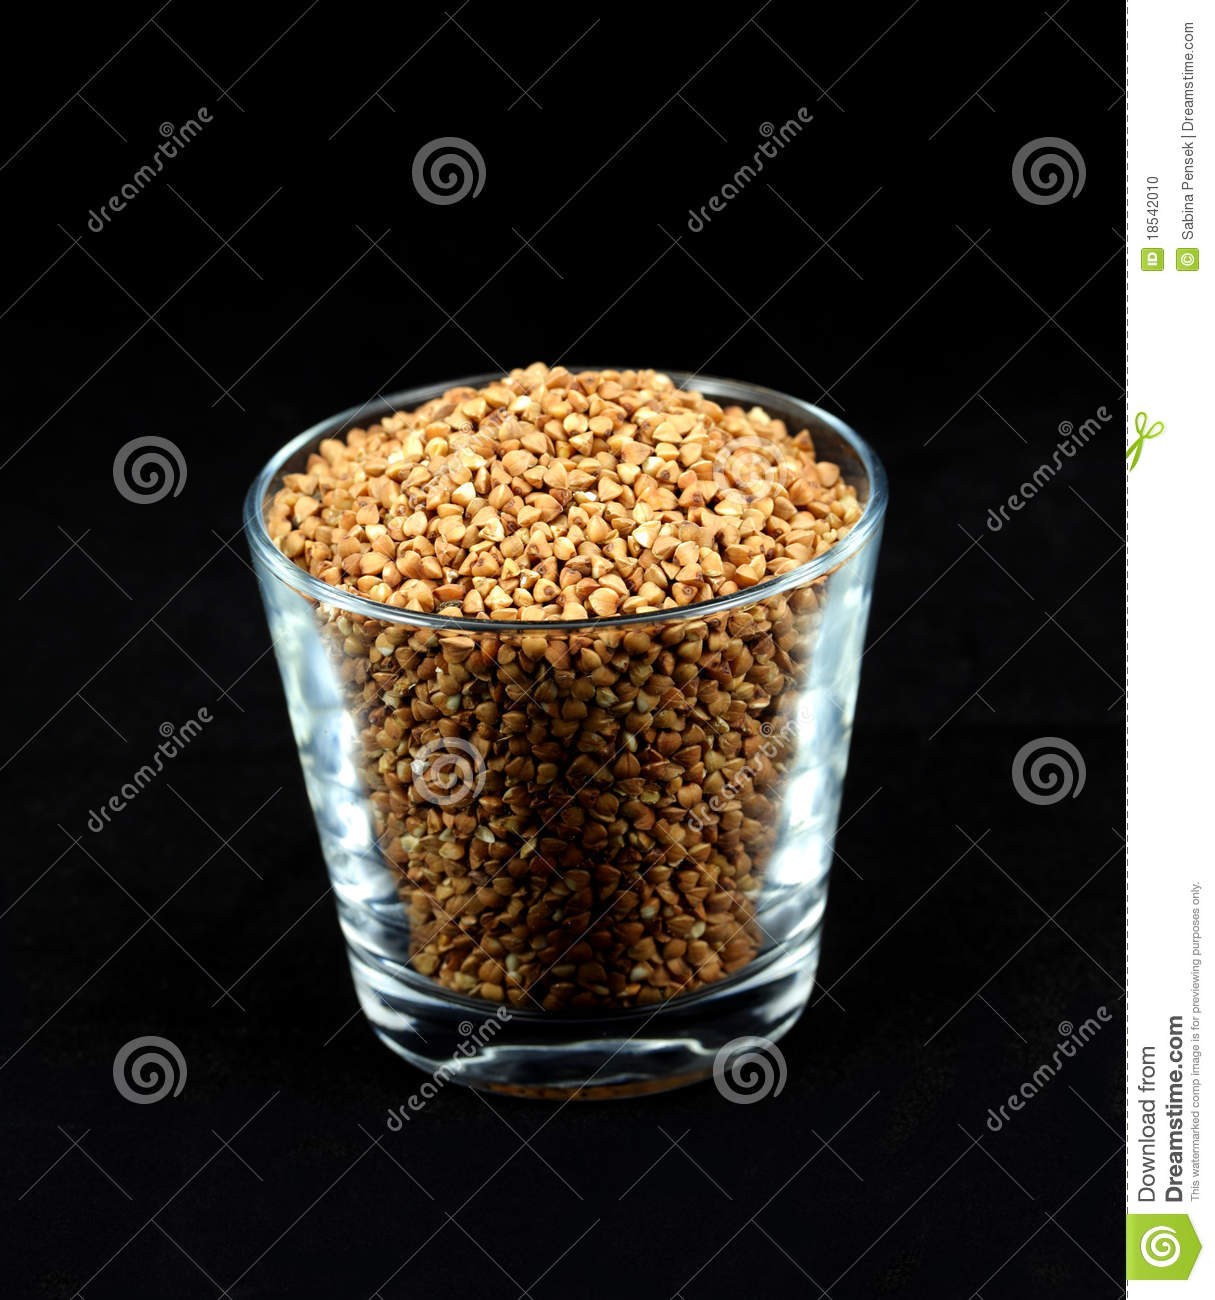 how to cook buckwheat kernels